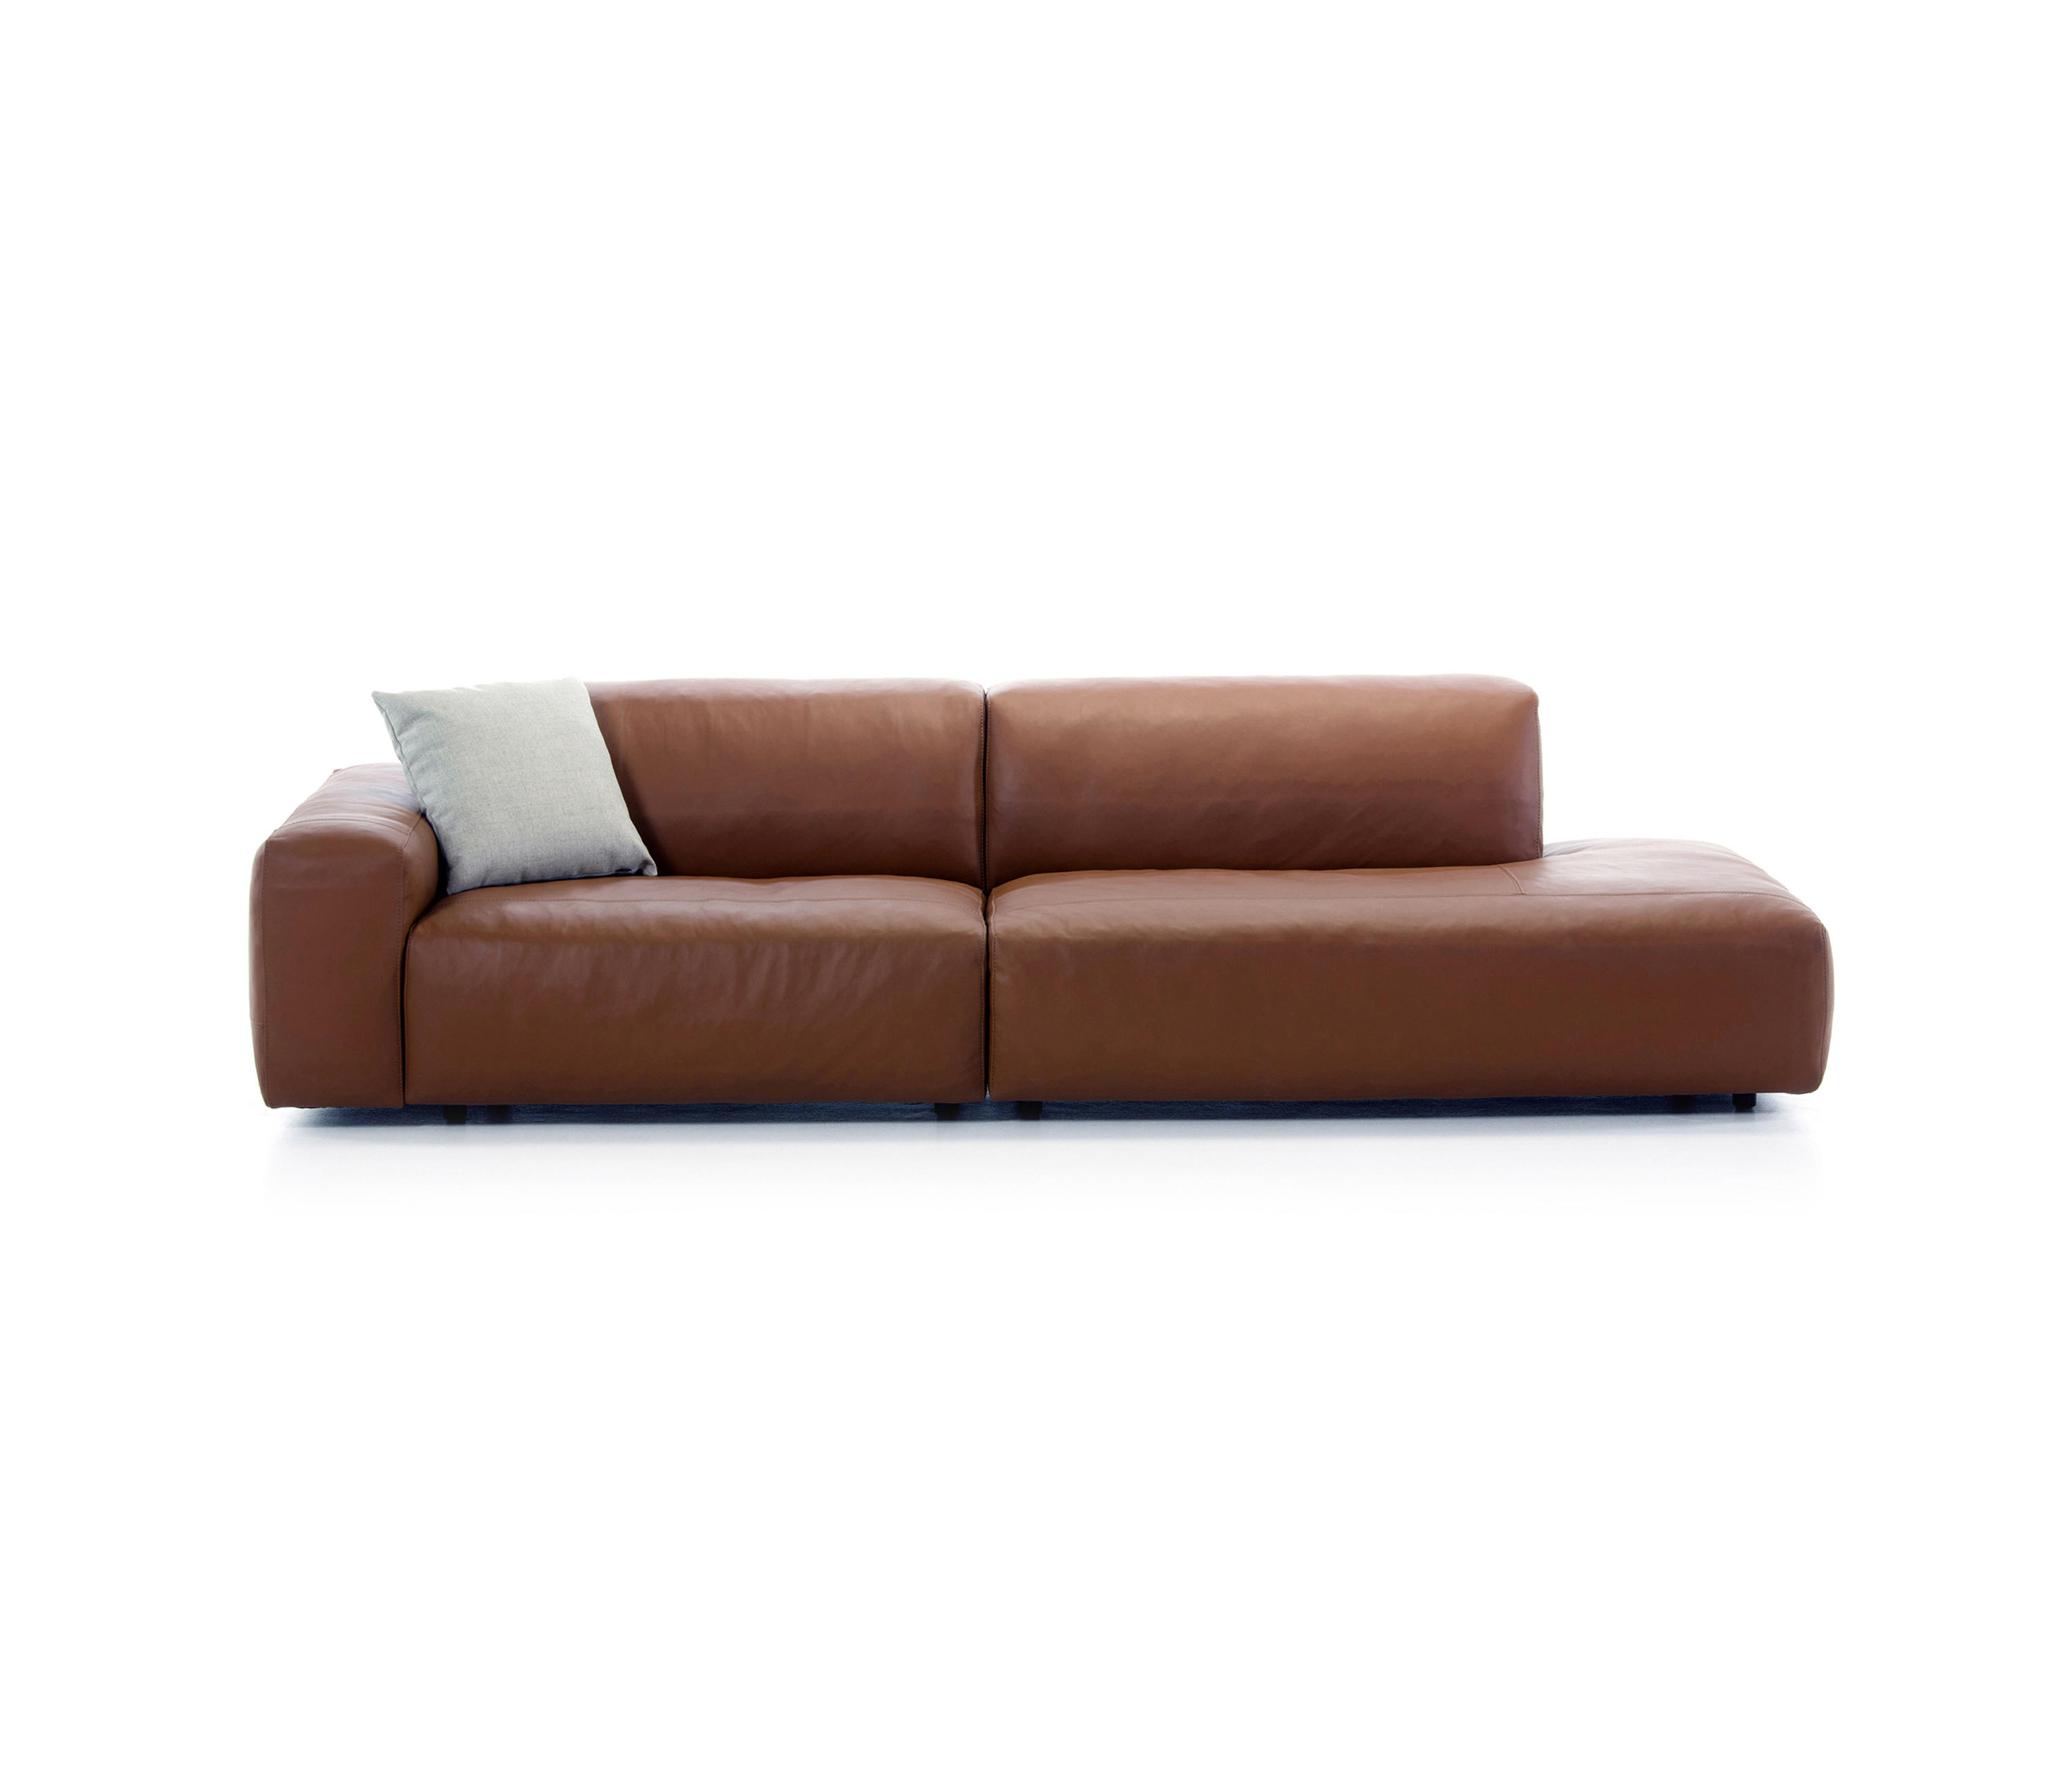 Chaise lounge sofa leder  CLOUD LEDER-SITZGARNITUR - Sofas von Prostoria | Architonic